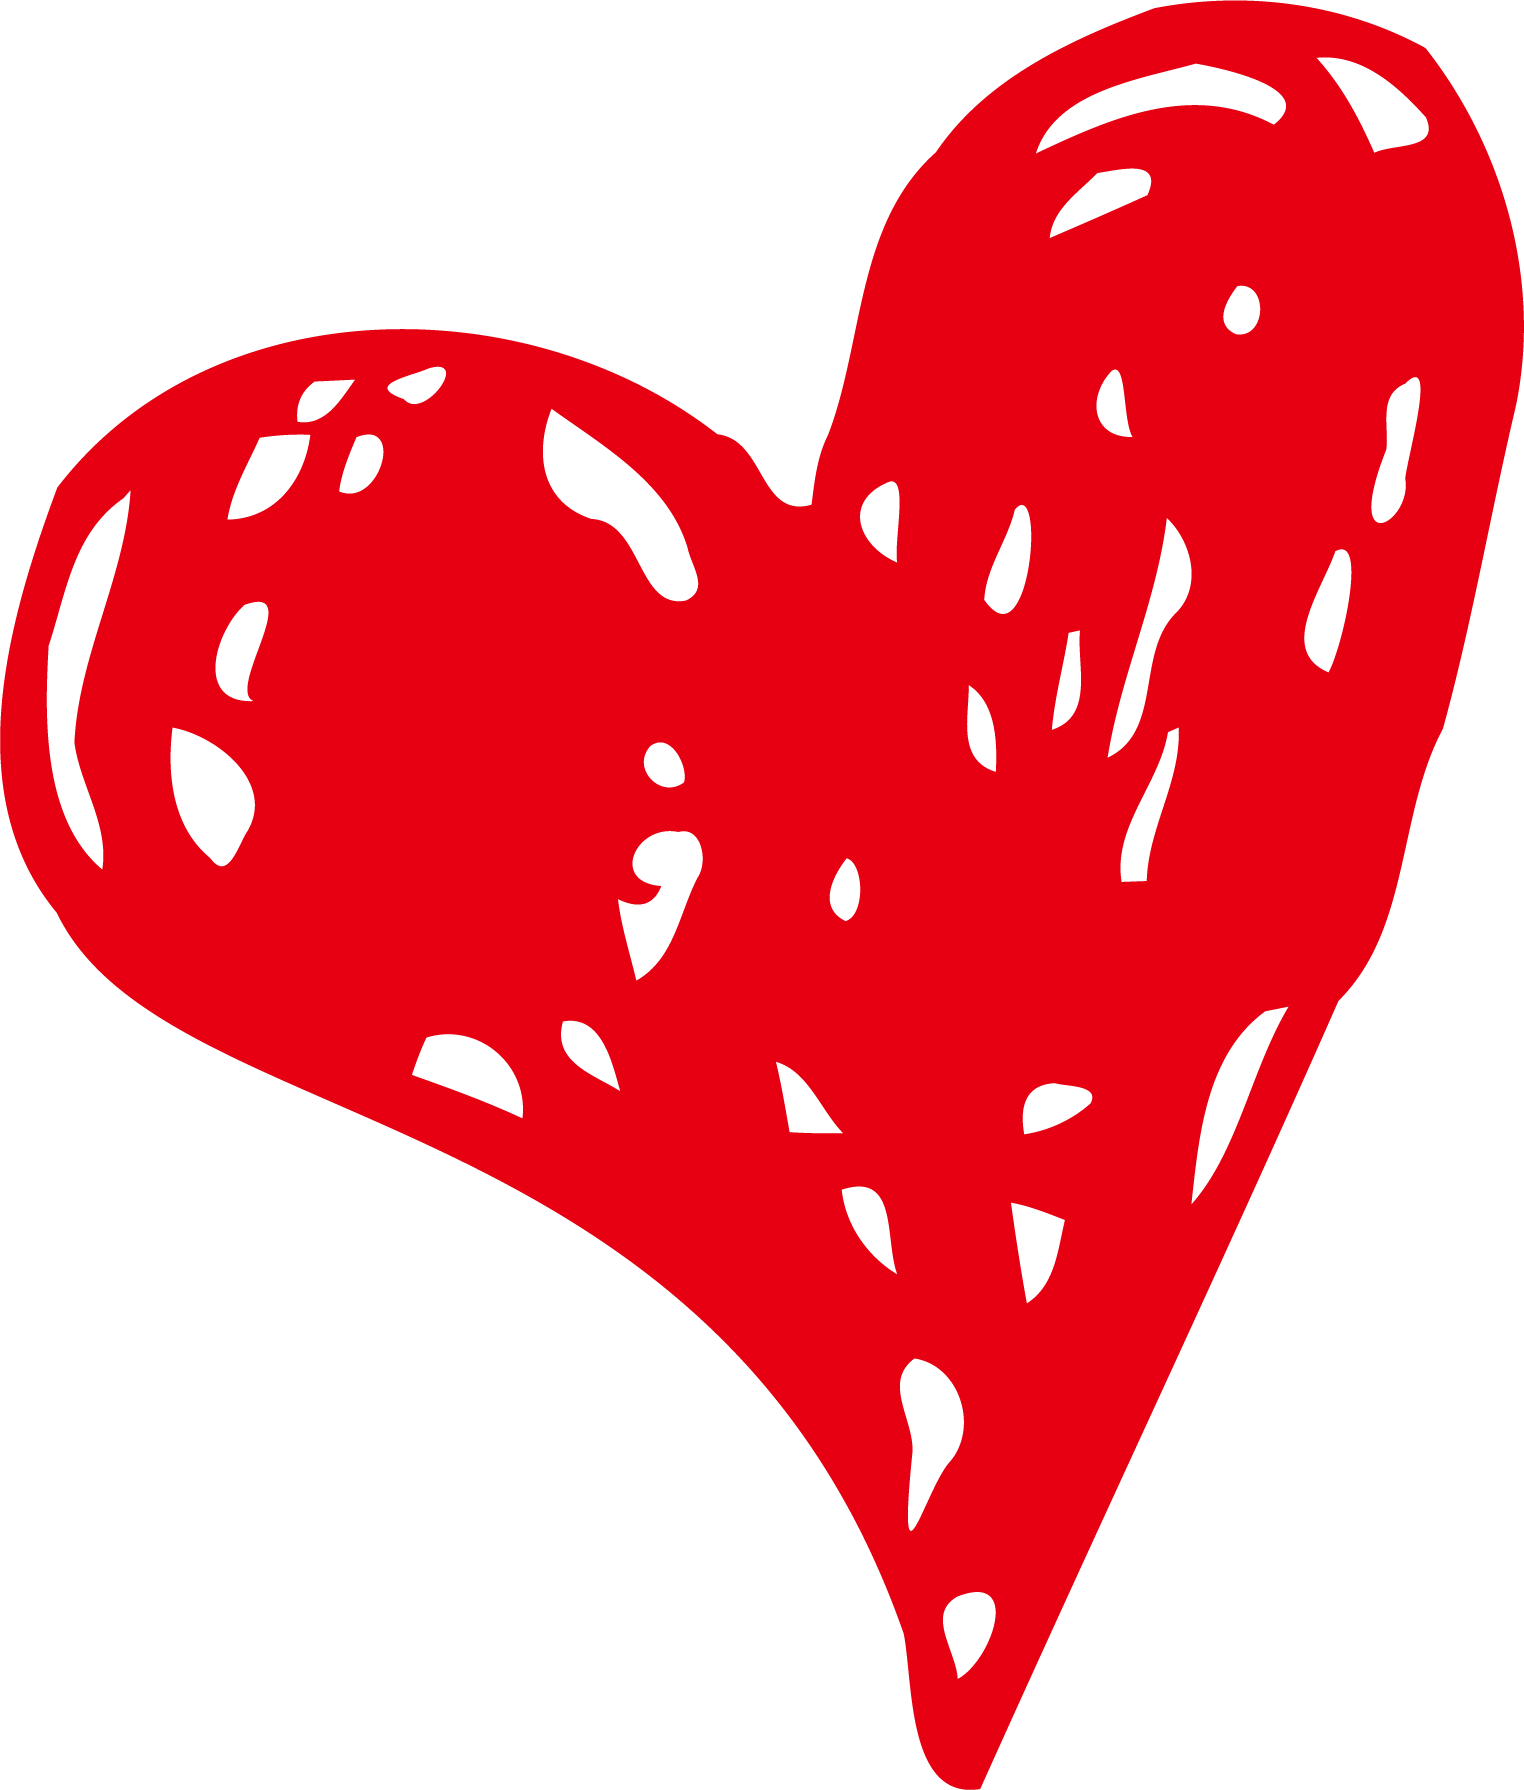 Corazón png heart drawing. Computer file red transprent